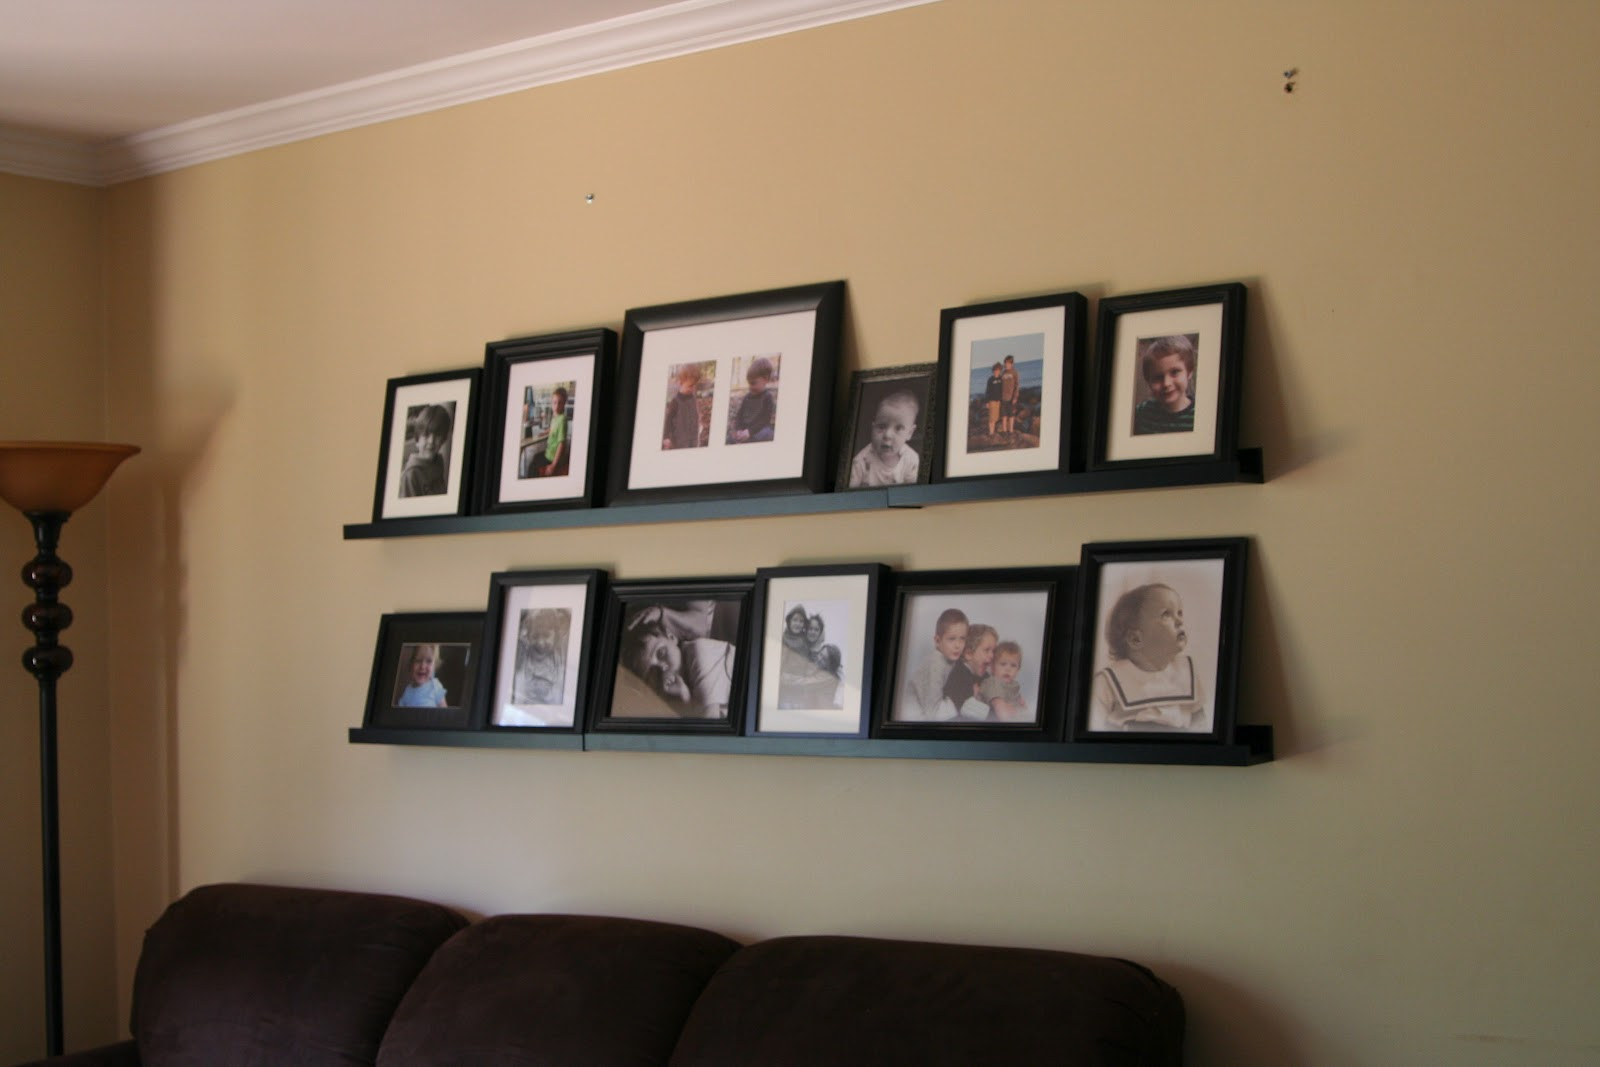 Ikea Ribba Picture ledge hanging: proving we can accomplish things ...